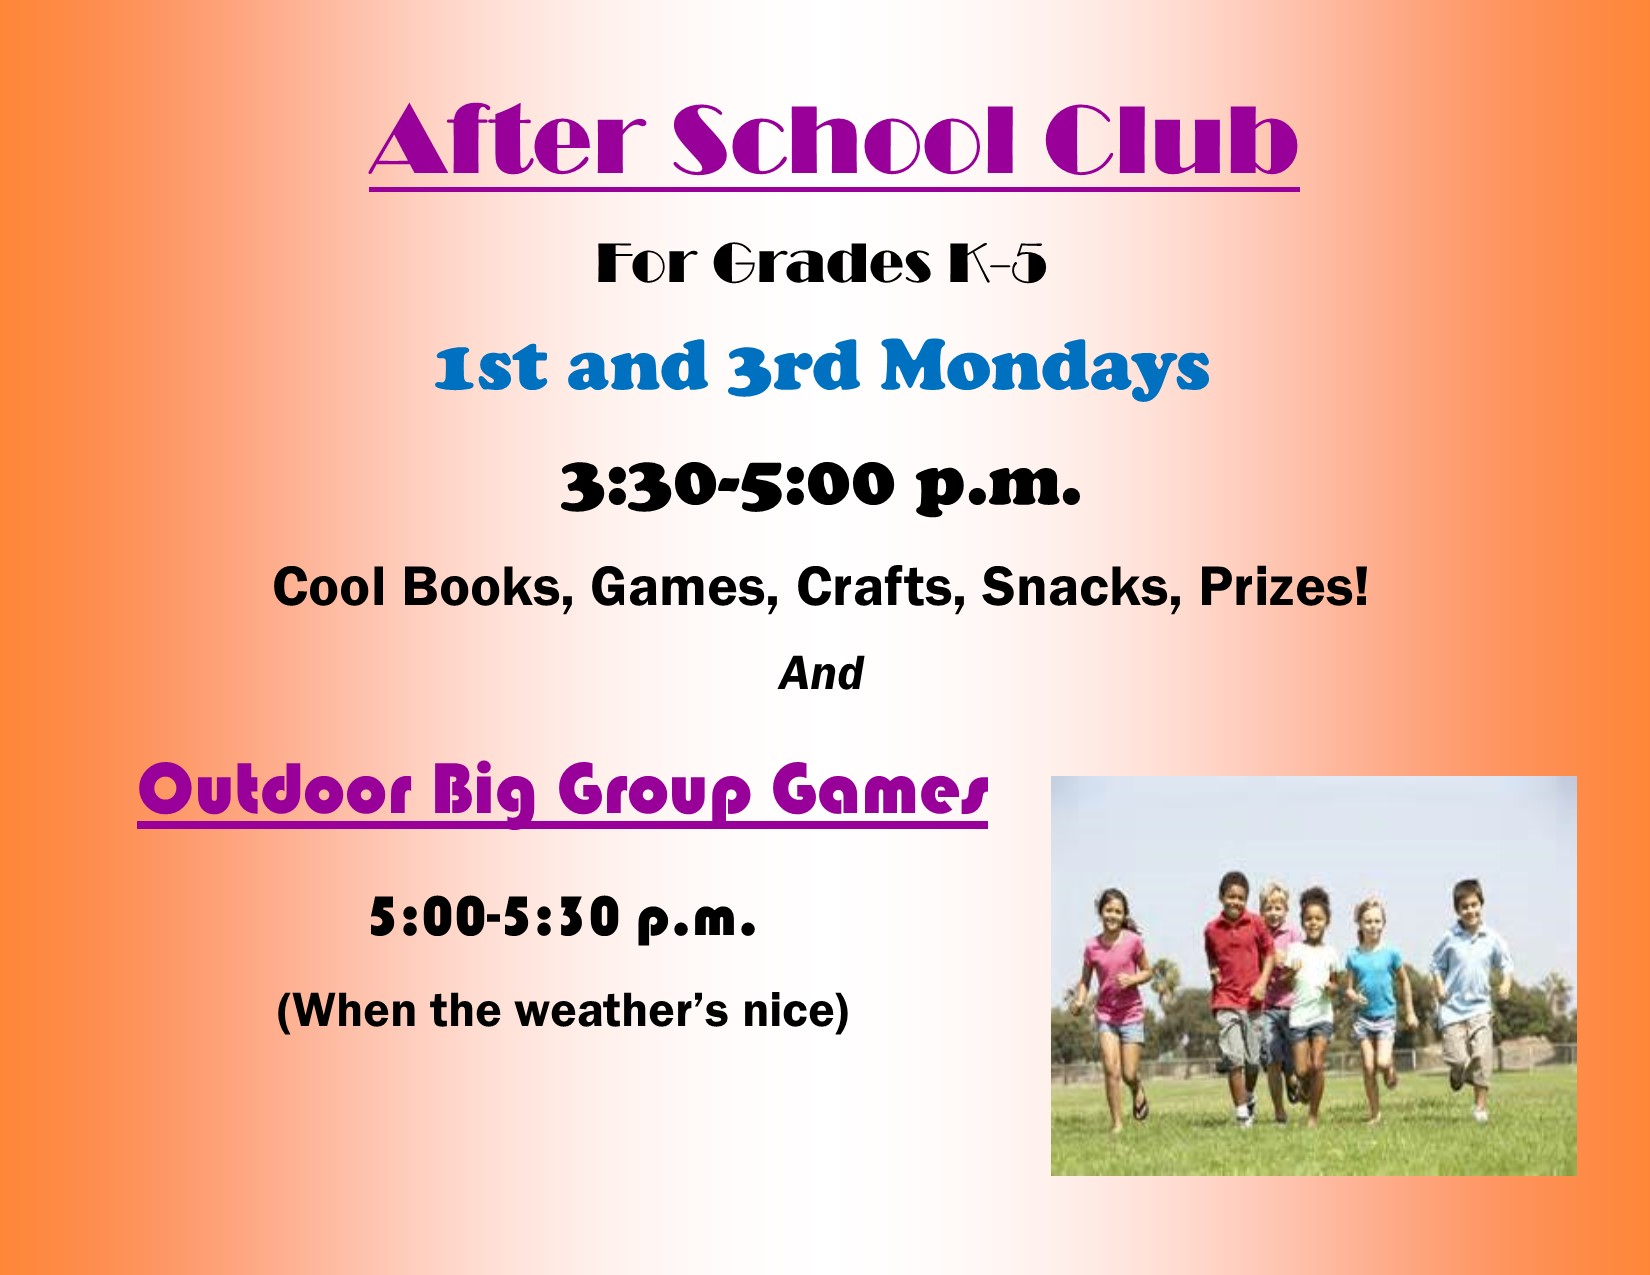 After School Club for spring